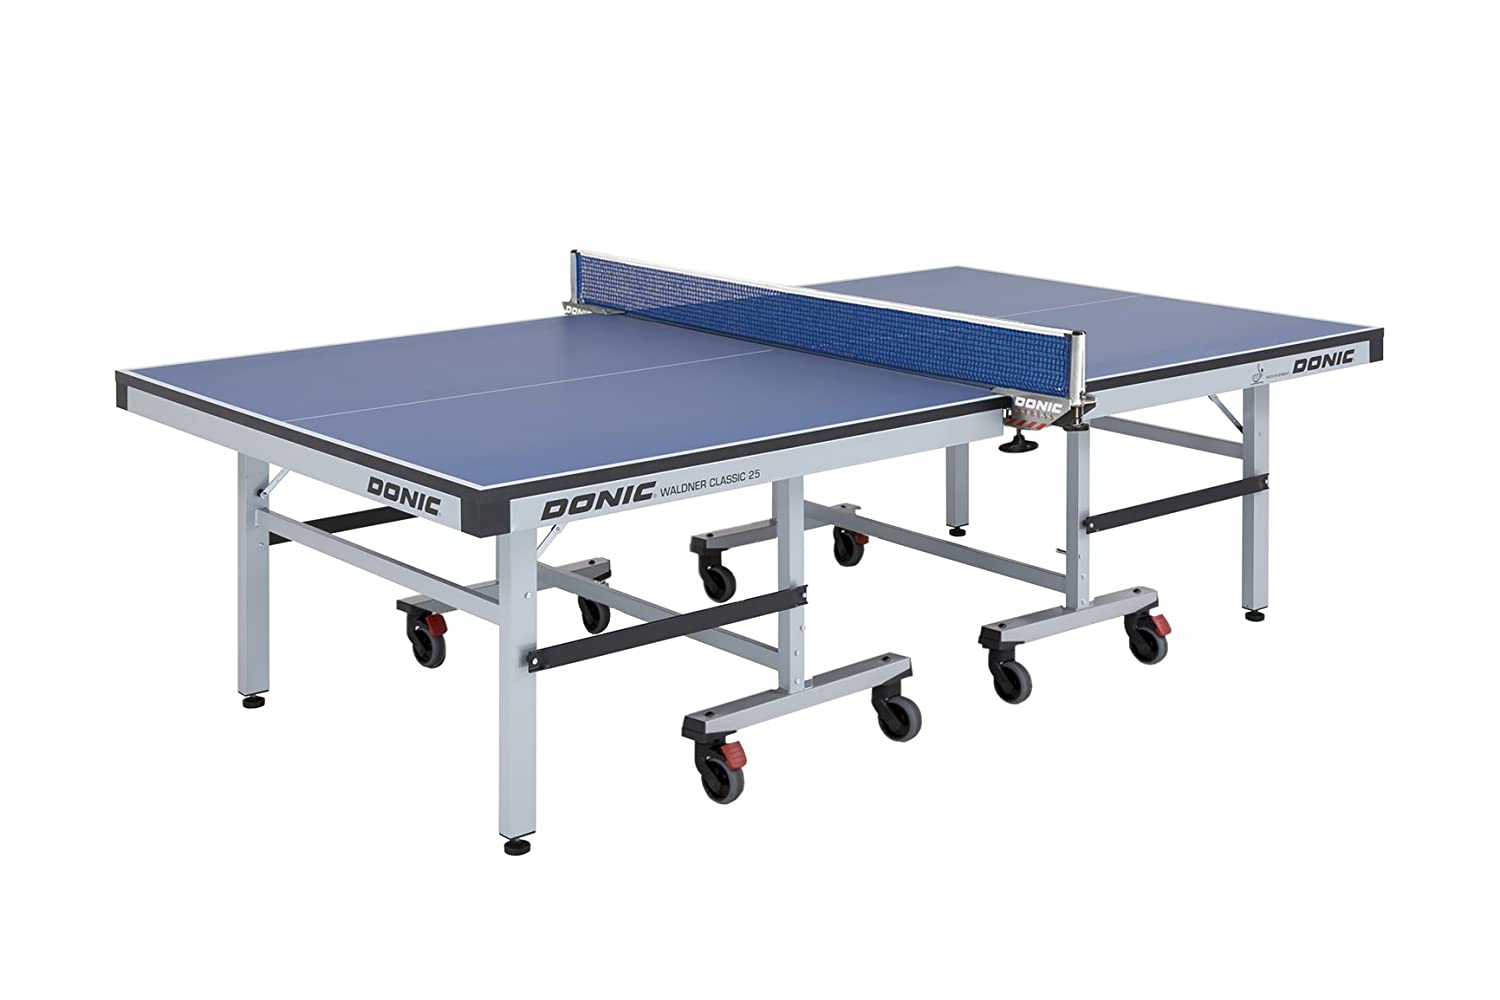 Donic Waldnerクラシック25 Table Tennis Table B00GO5XEWQ